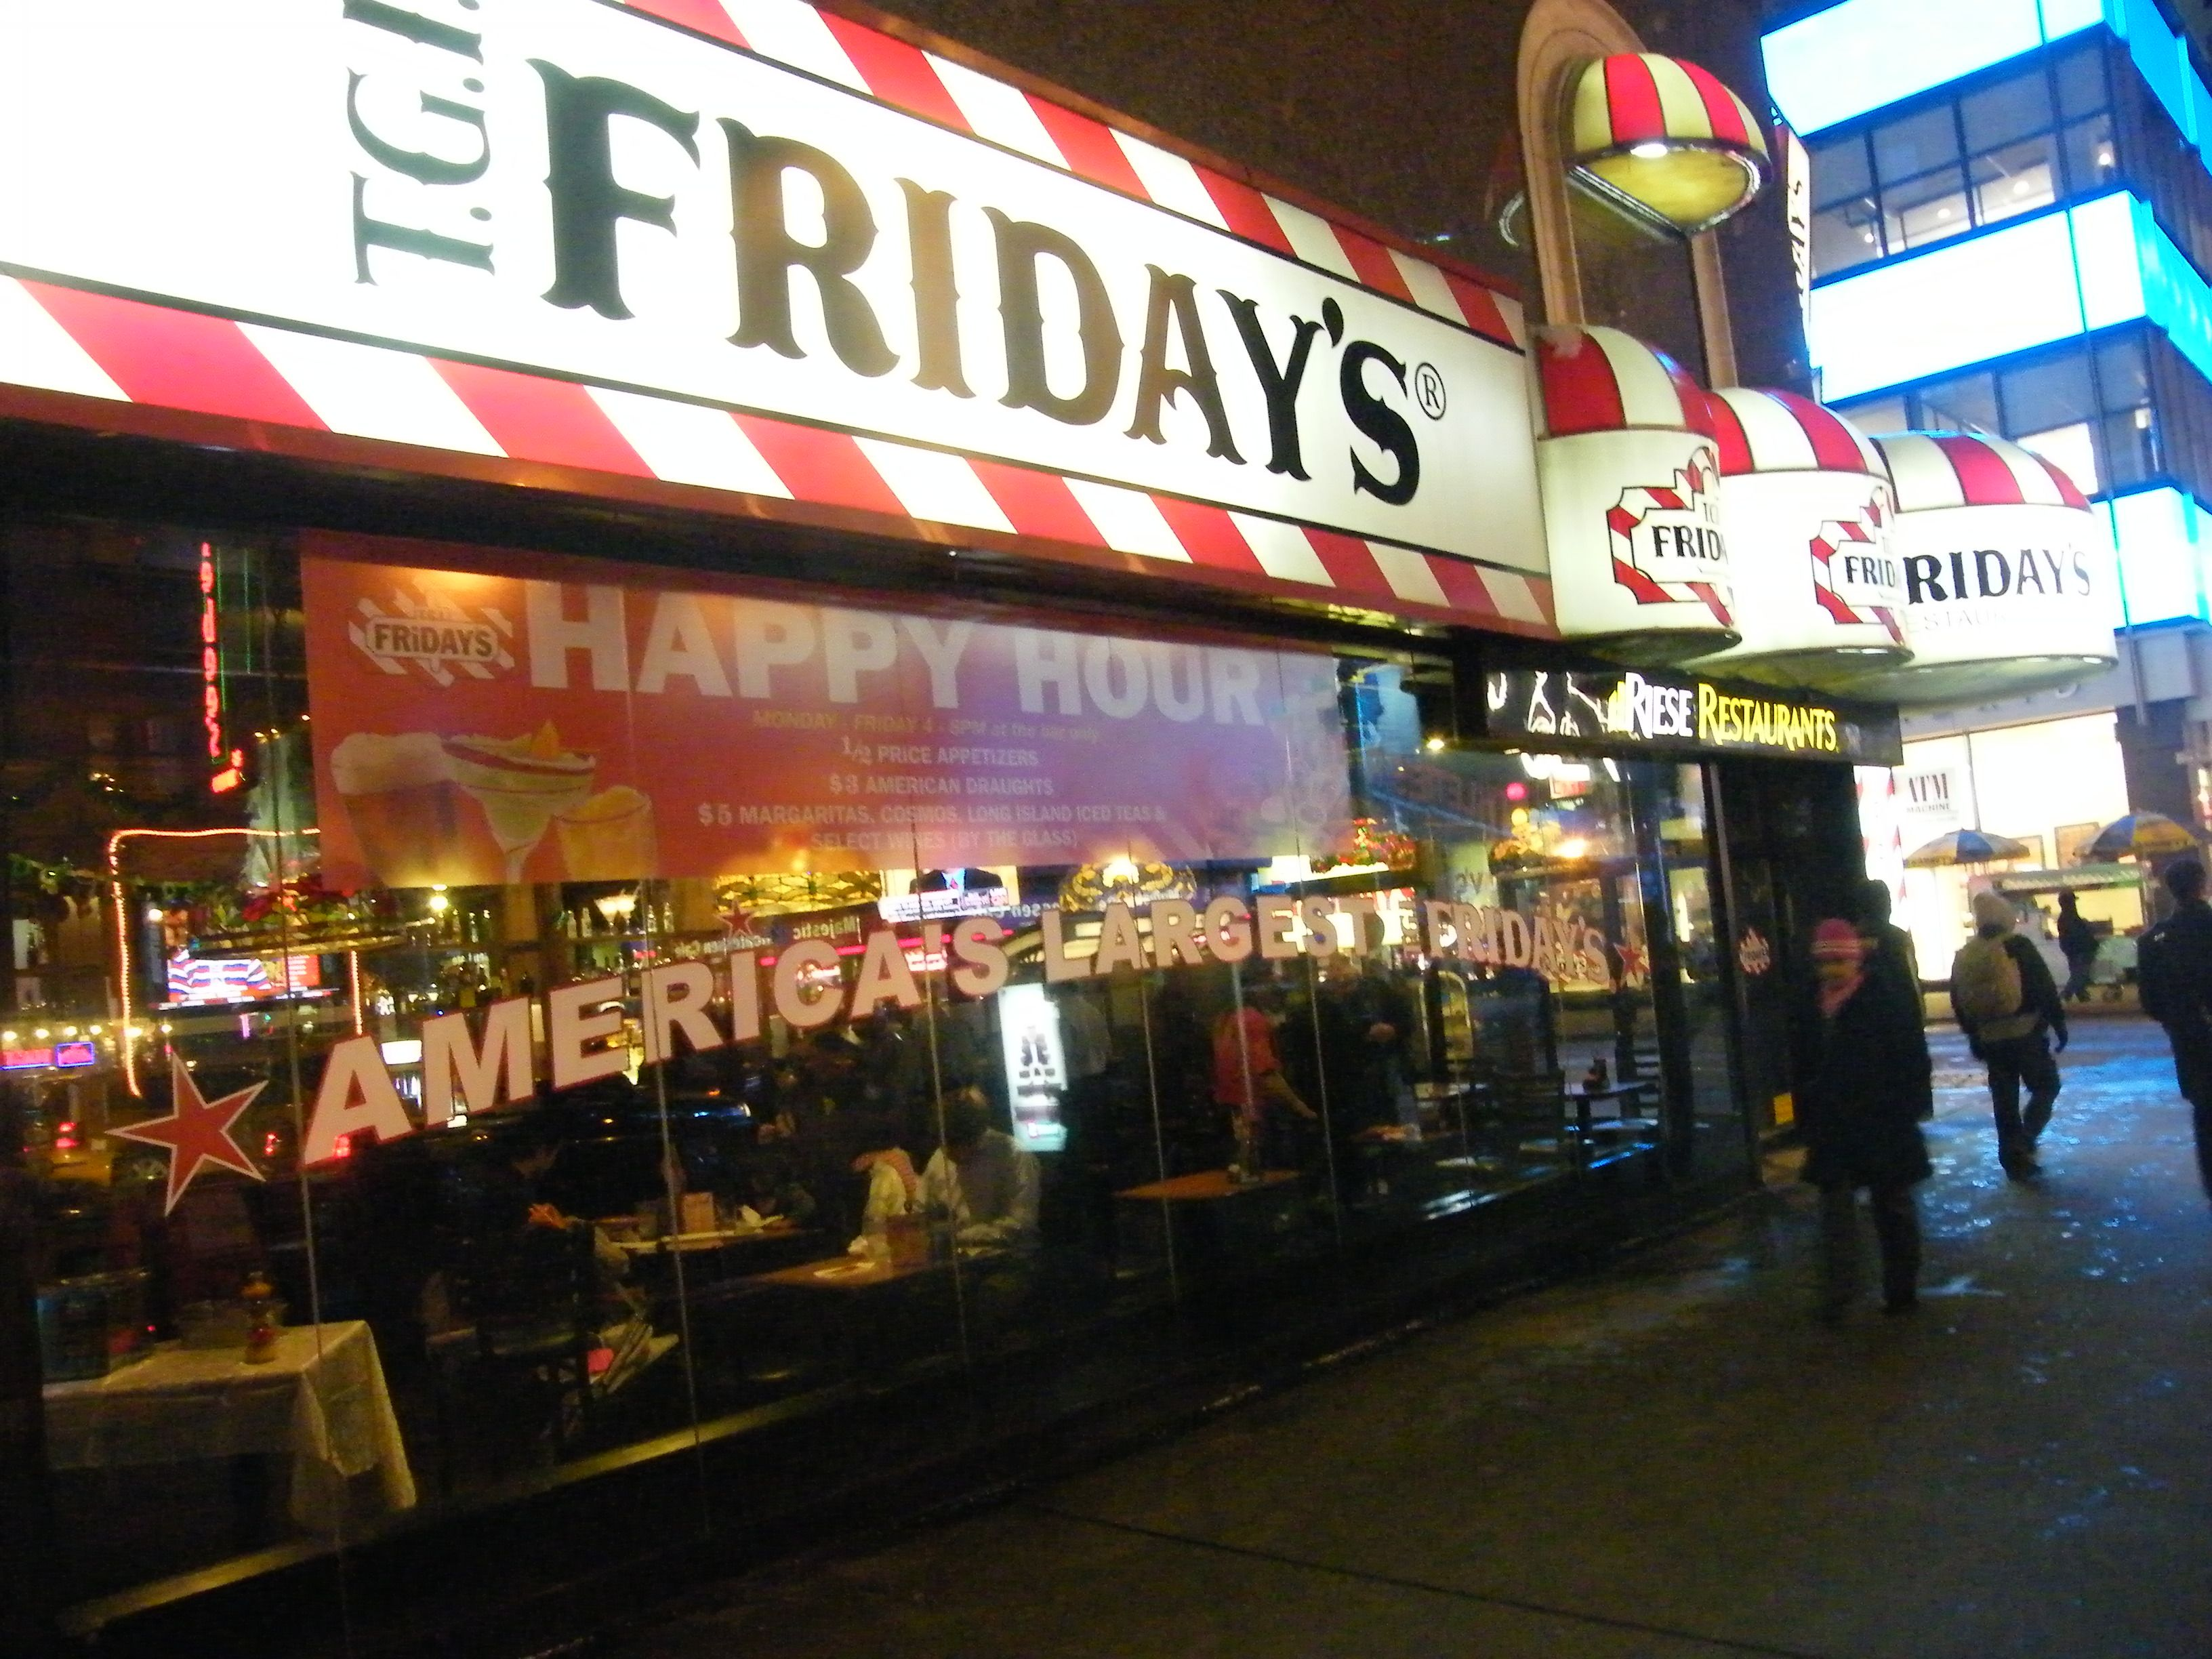 Amerikanische Restaurants Nrw Tgi Friday S Wikipedia